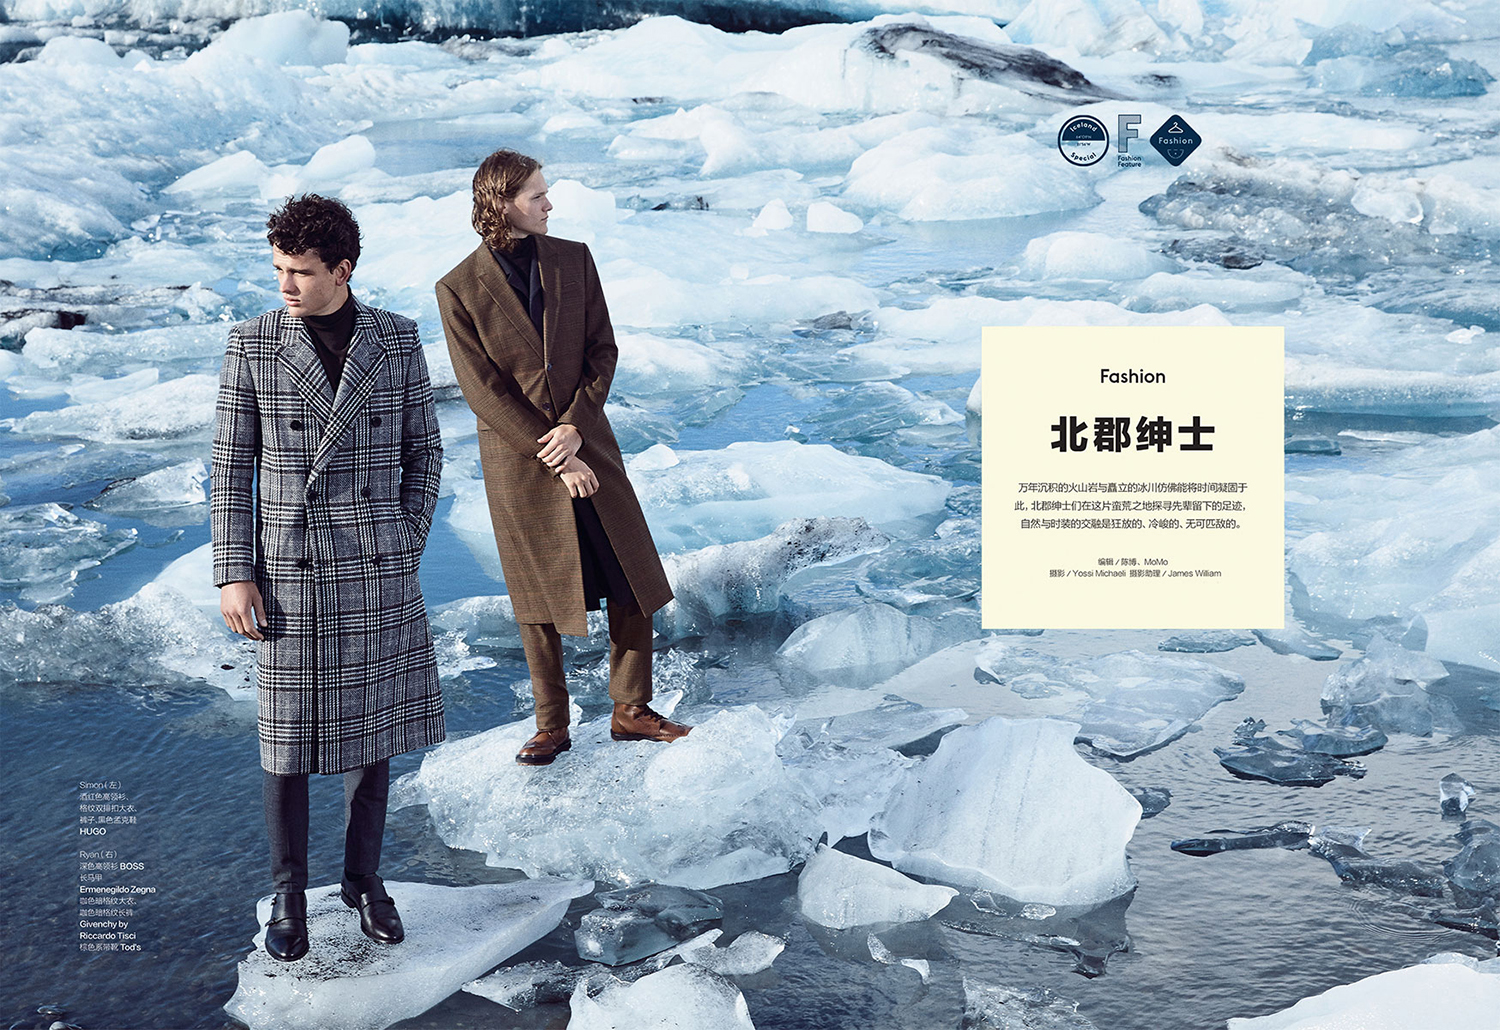 Esquire-China-Iceland_9238-2-copy copy.jpg